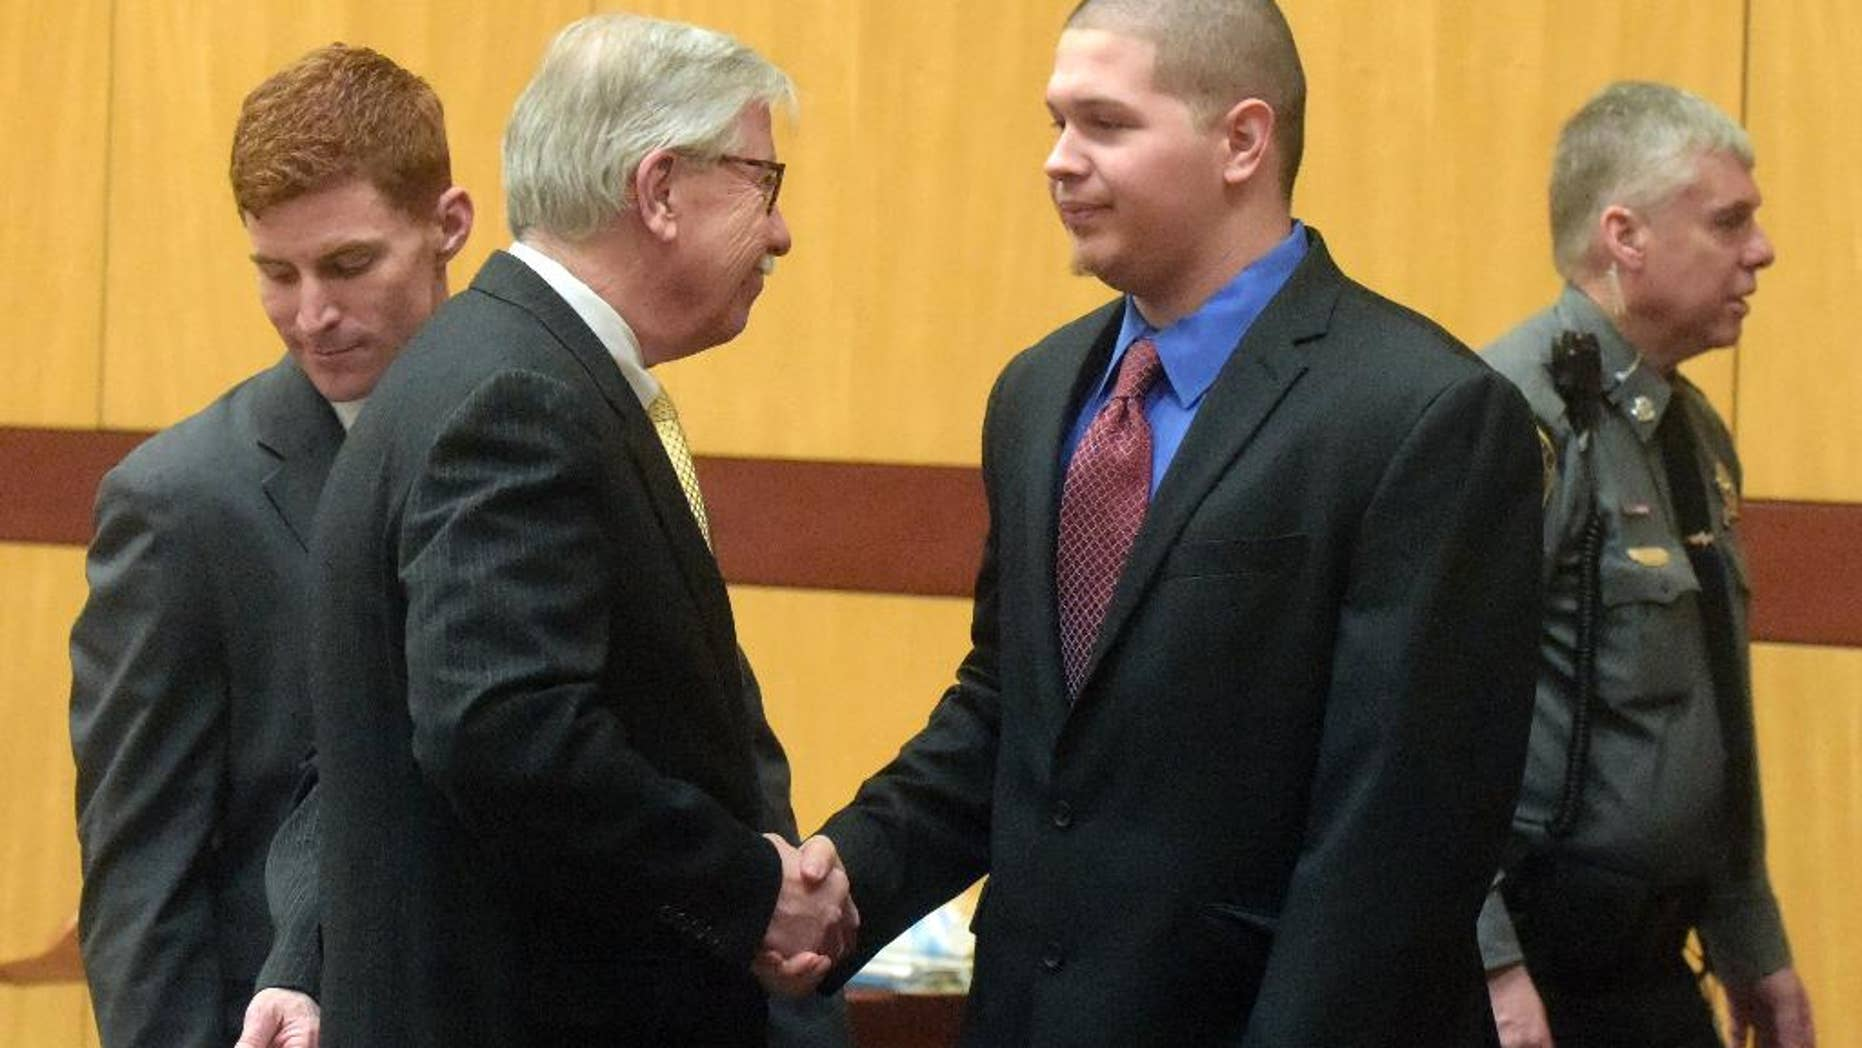 Defendant Tony Moreno, center right, shakes hands with Frederick O'Brien, one of his defense attorneys, after walking into a courtroom at Middletown Superior Court, Friday, Feb. 10, 2017, in Middletown, Conn. Moreno is charged with killing his 7-month-old son by throwing the boy off a bridge. (Patrick Raycraft/Hartford Courant via AP, Pool)